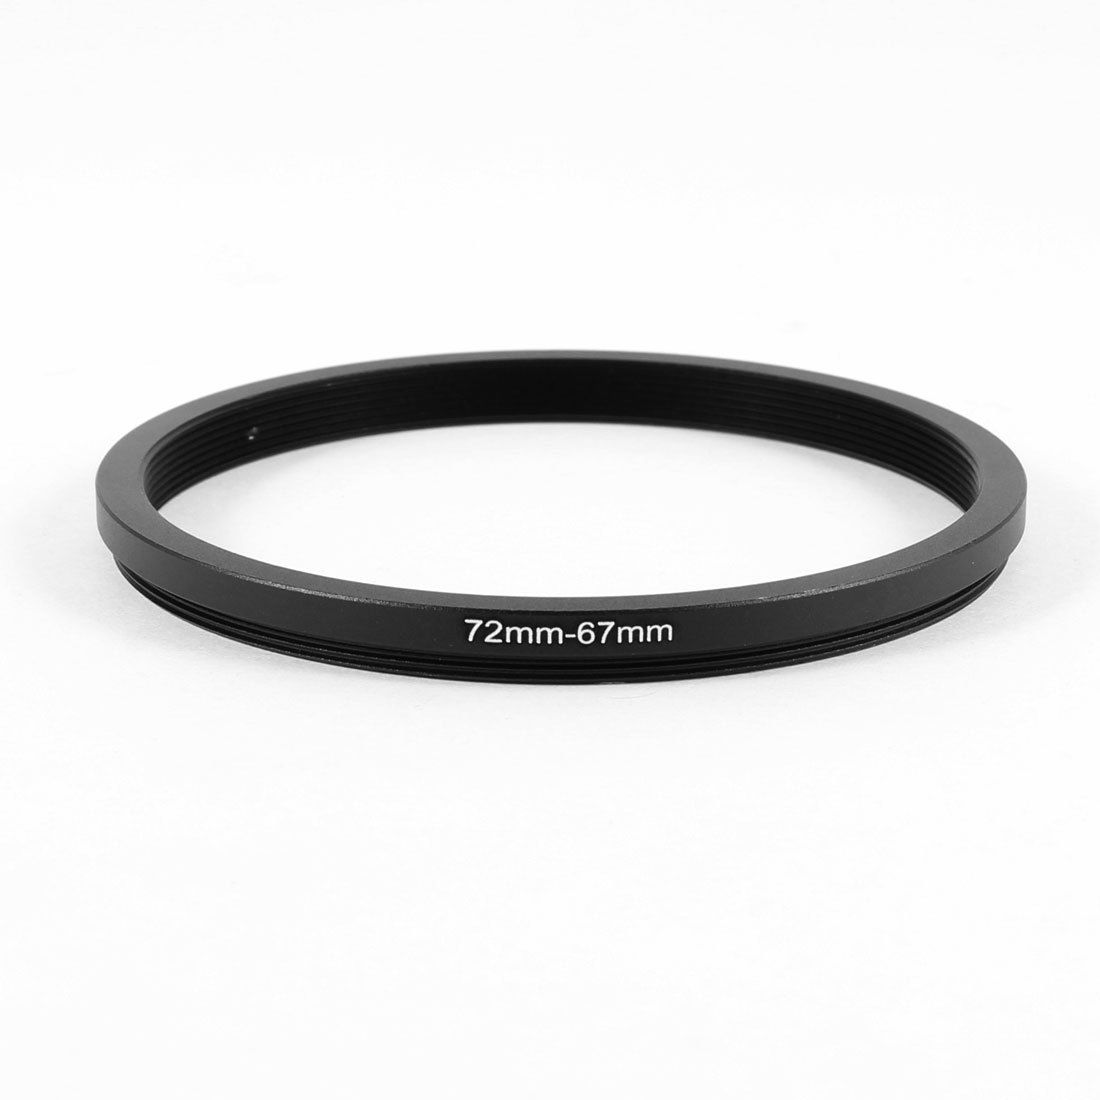 72mm-67mm 72-67 Mm 72 To 67 Mm 72mm To 67mm Metal Step Down Lens Filter Adapter Ring Stepping